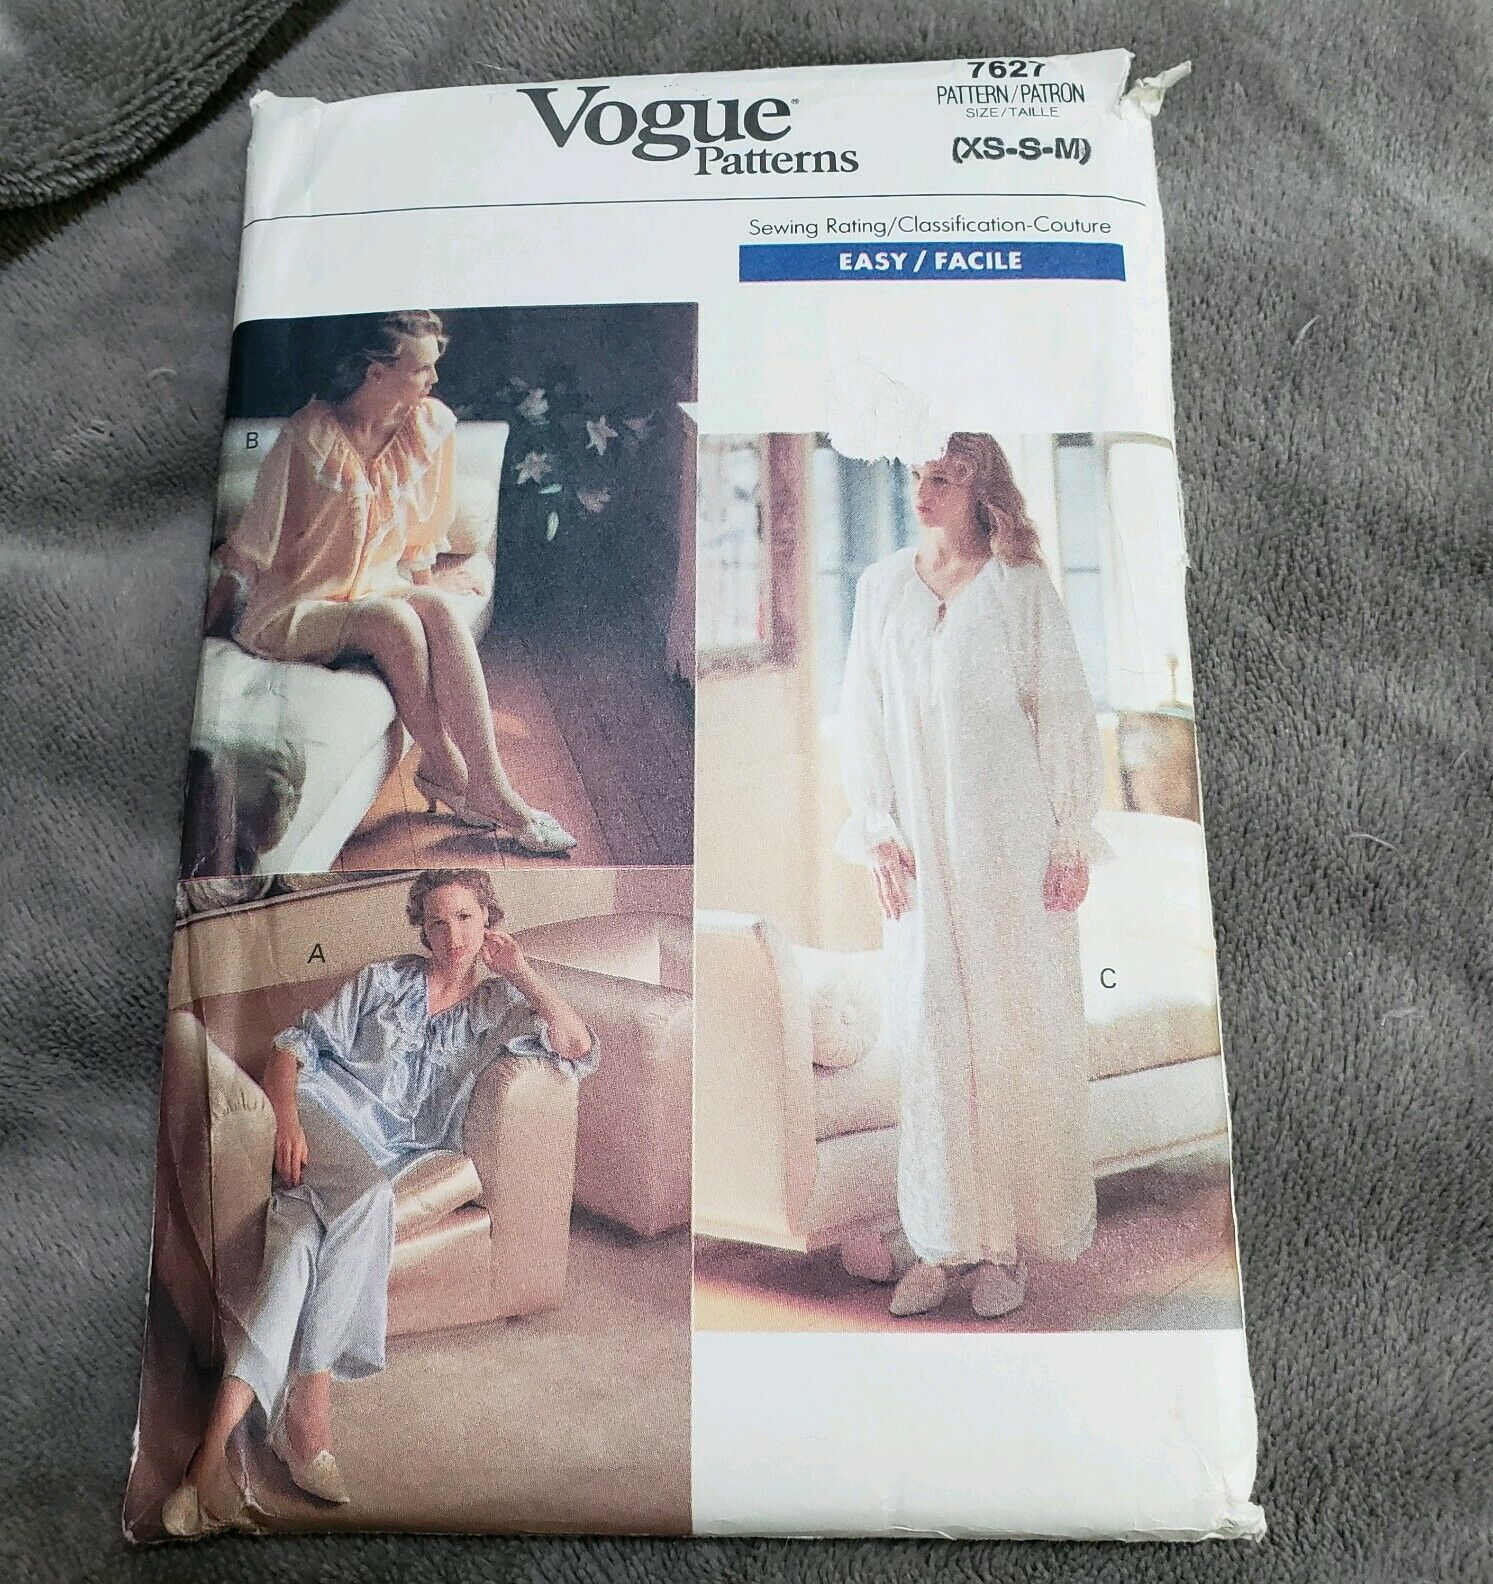 Vogue 7627 Nightgown Pajama Top Pants Woman's 6 8 10 12 14 Bust 30 1/2 - 36 UC